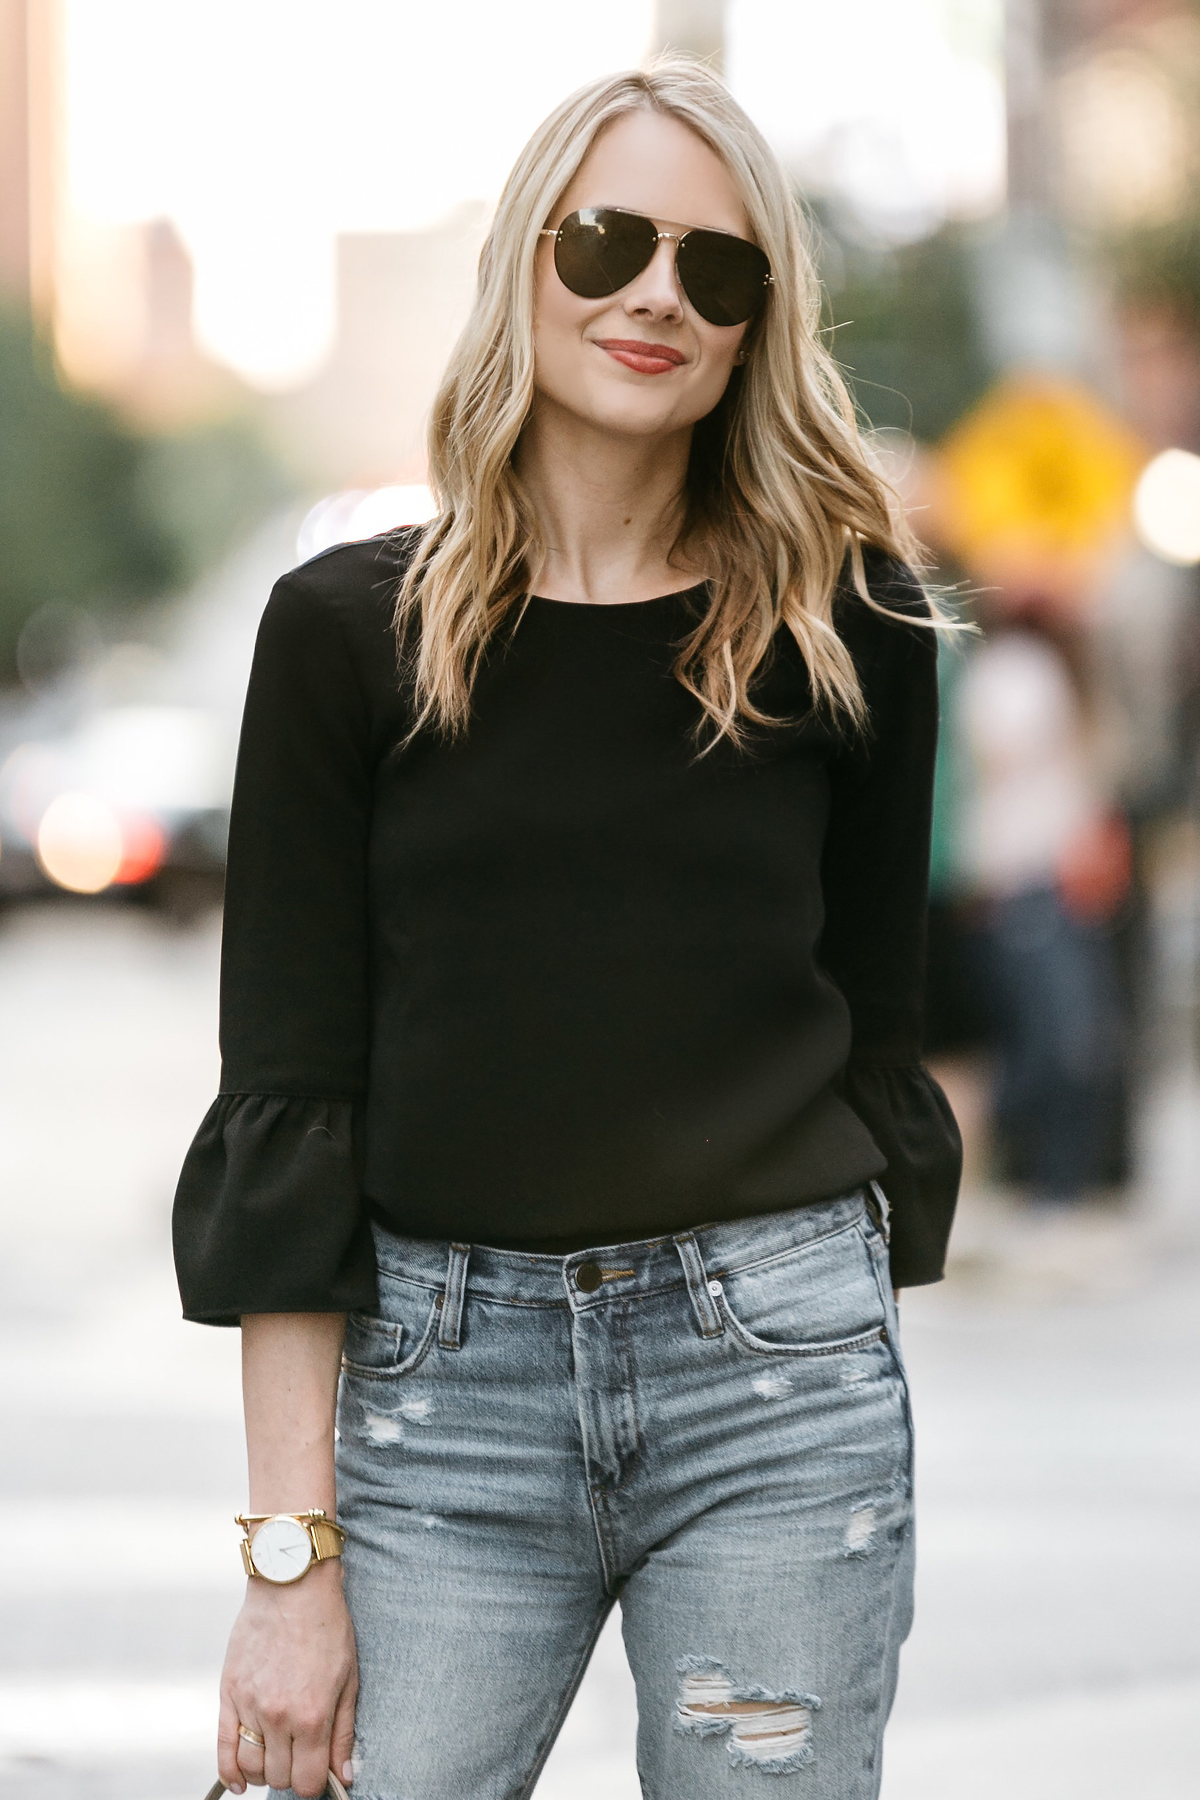 Fashion Jackson, Dallas Blogger, Fashion Blogger, Street Style, Black Bell Sleeve Top, Denim Ripped Mom Jeans, Celine Aviator Sunglasses